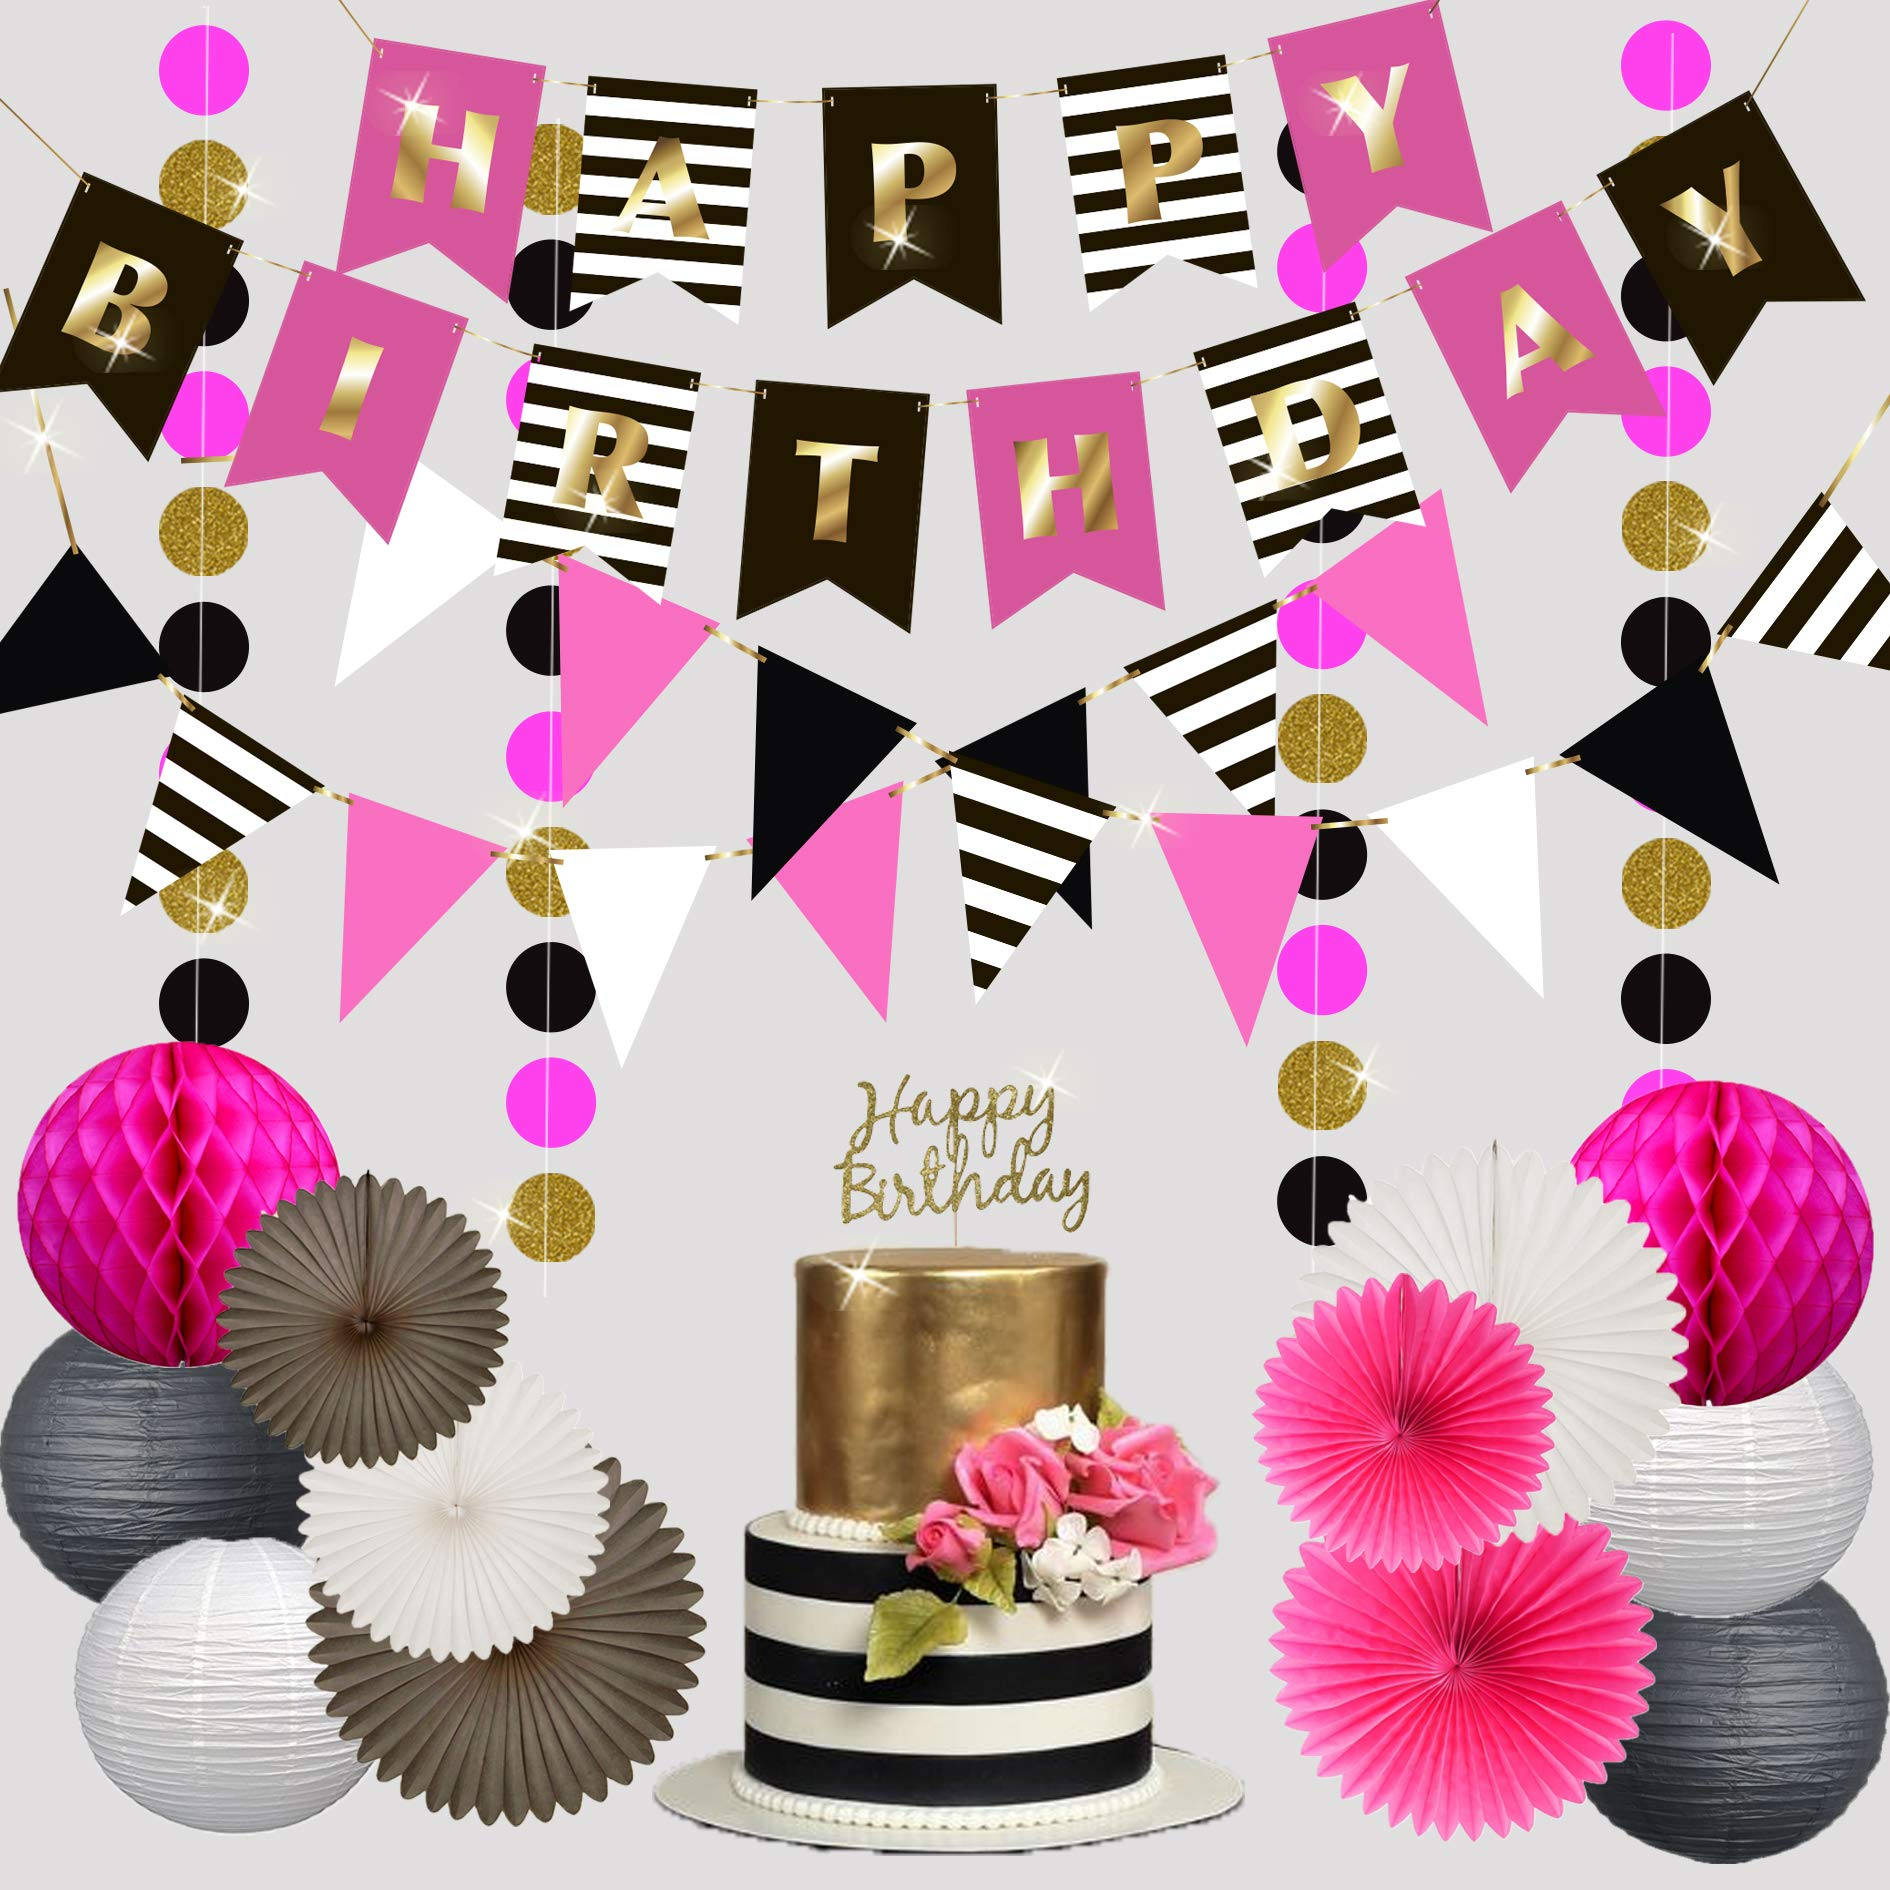 Premium Happy Birthday Decorations for Girls Women Party Set Kit | Hot Pink Gold Black White | Kate Spade Inspired |Banner Garland Bunting | Paper Lanterns | Honeycomb Balls | Tissue Fans| Cake Topper